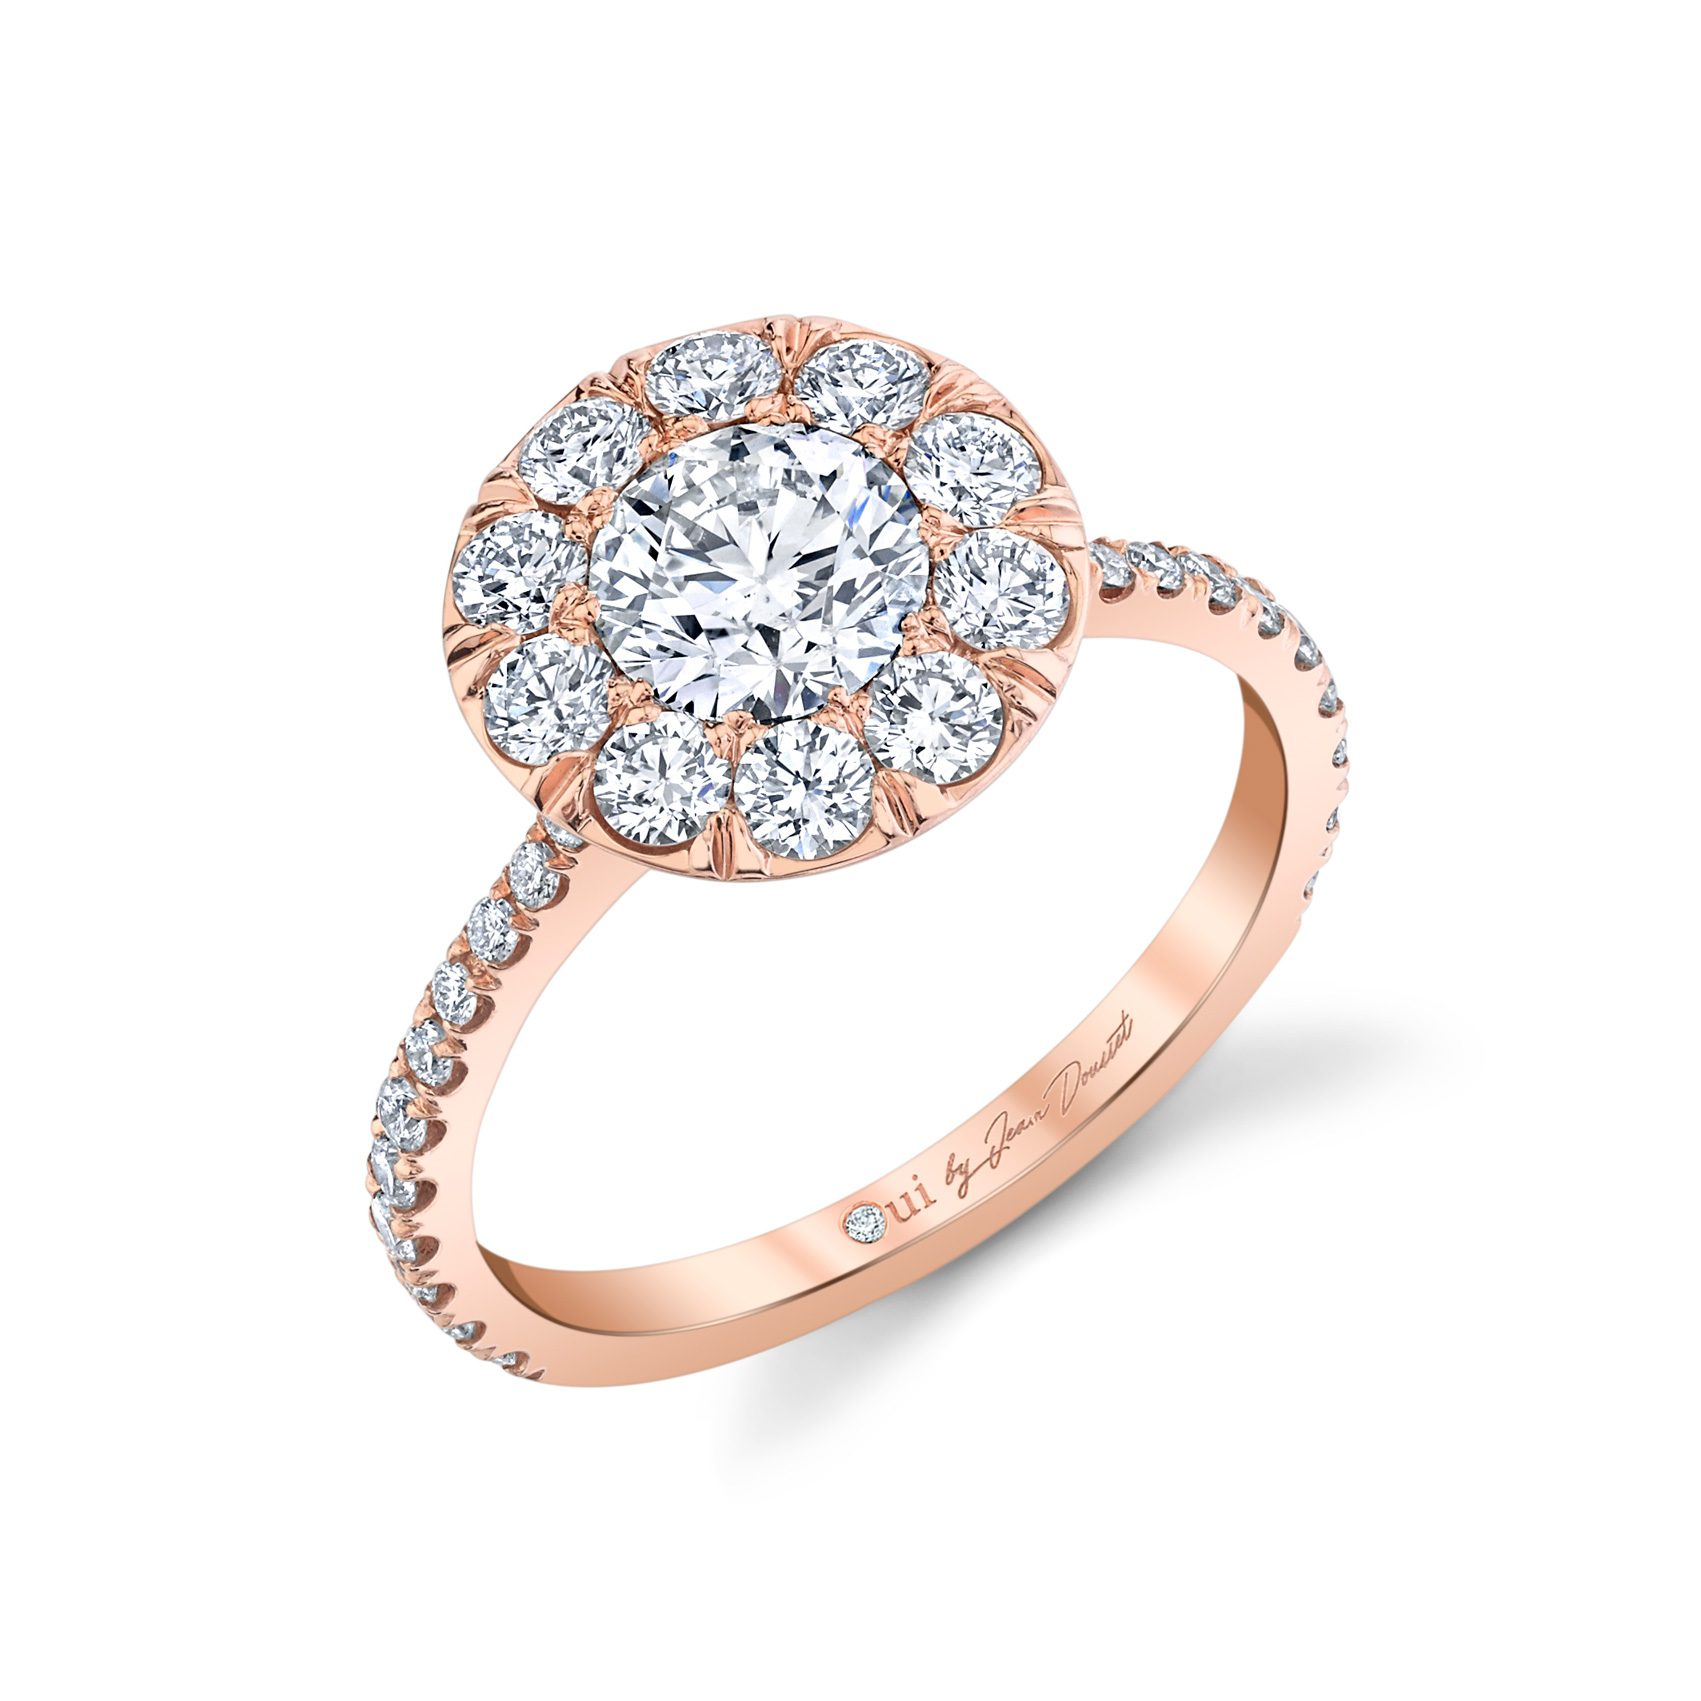 Eloise Floating Round Brilliant Seamless Solitaire® Engagement Ring with diamond pavé in 18k Rose Gold Profile View by Oui by Jean Dousset